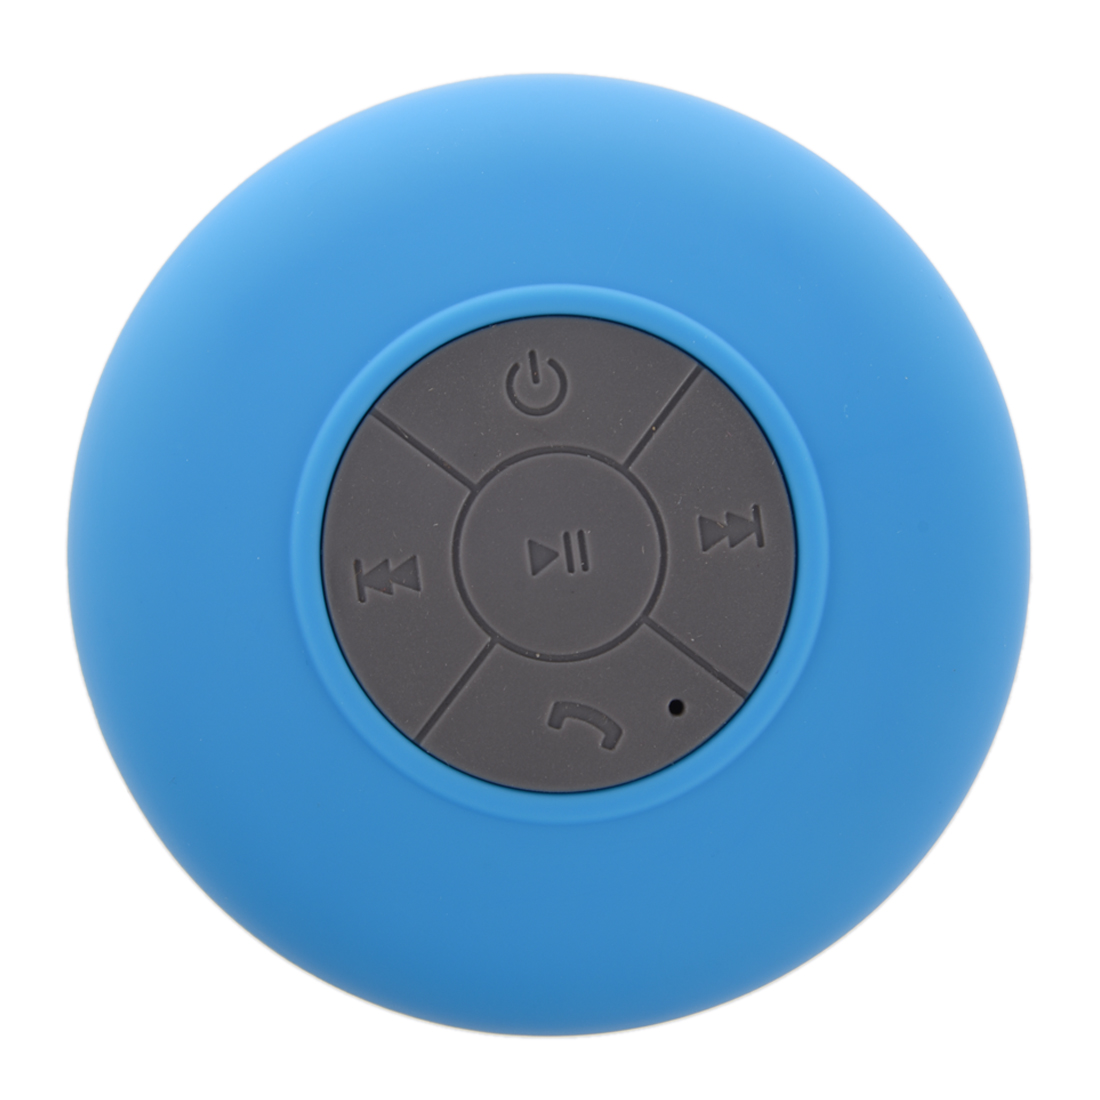 Portable Car Bathroom Handsfree Wireless Bluetooth Speaker (Blue)(China)